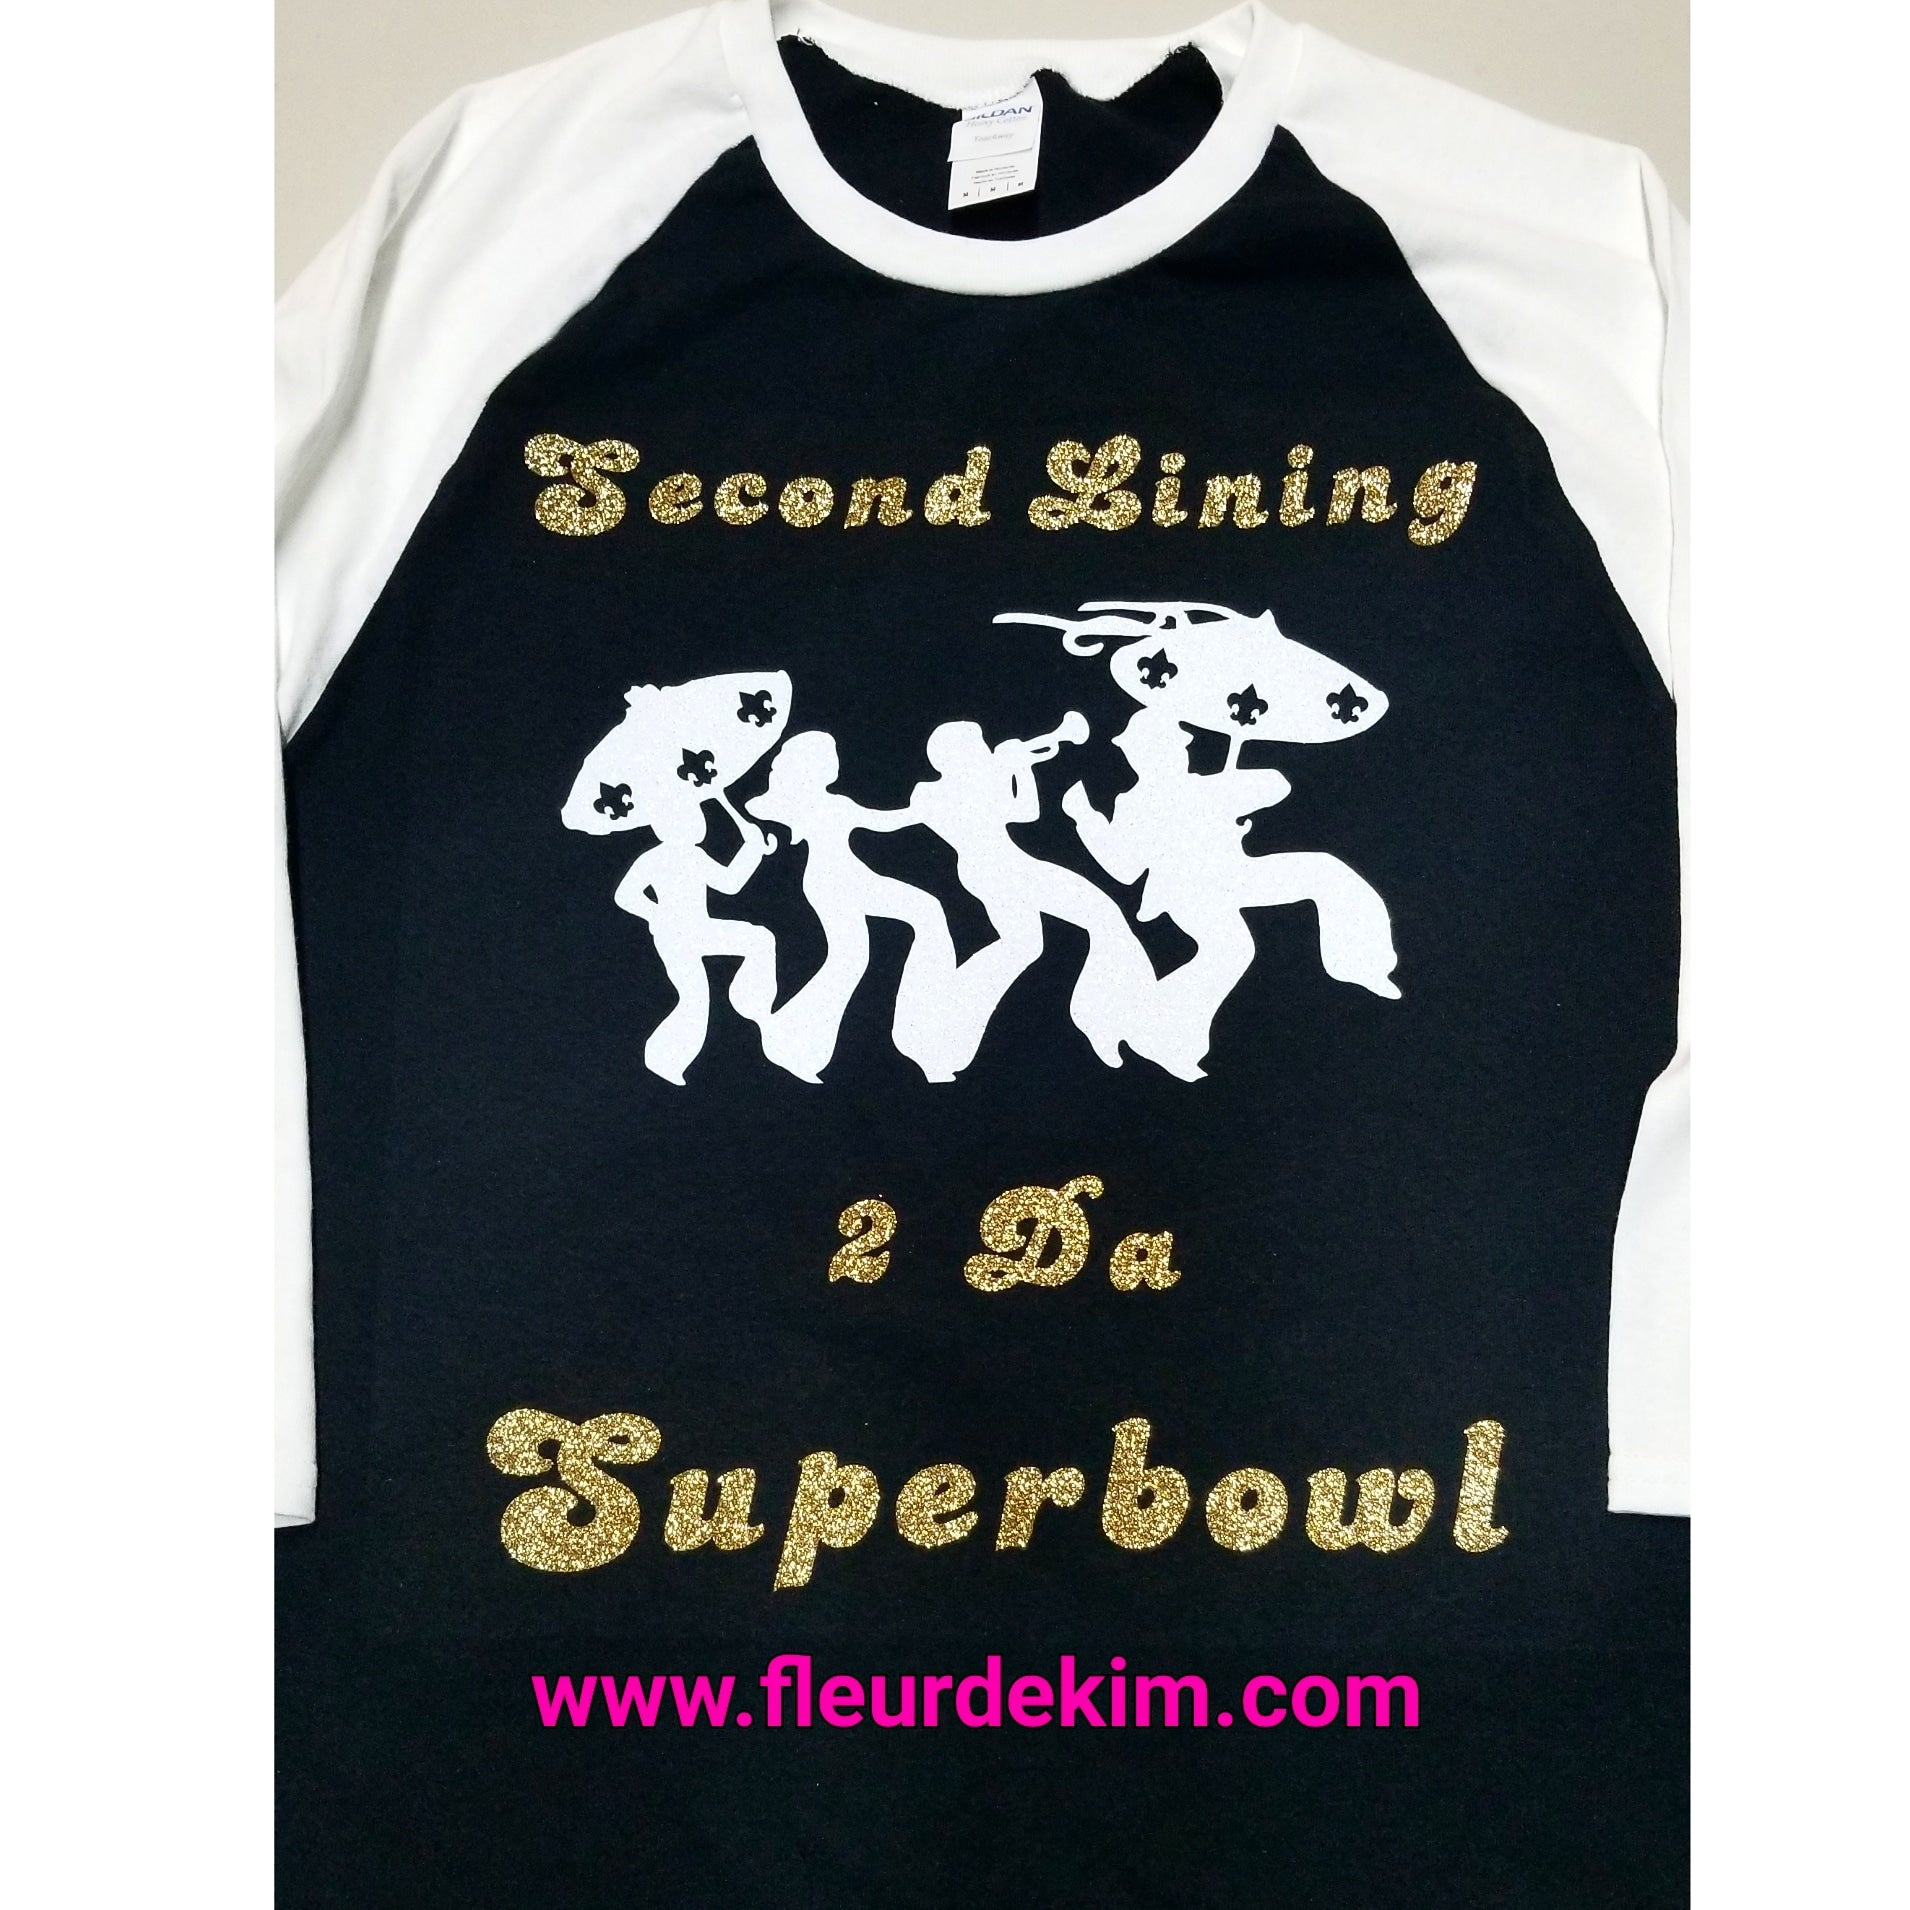 2nd lining to da Superbowl baseball shirt